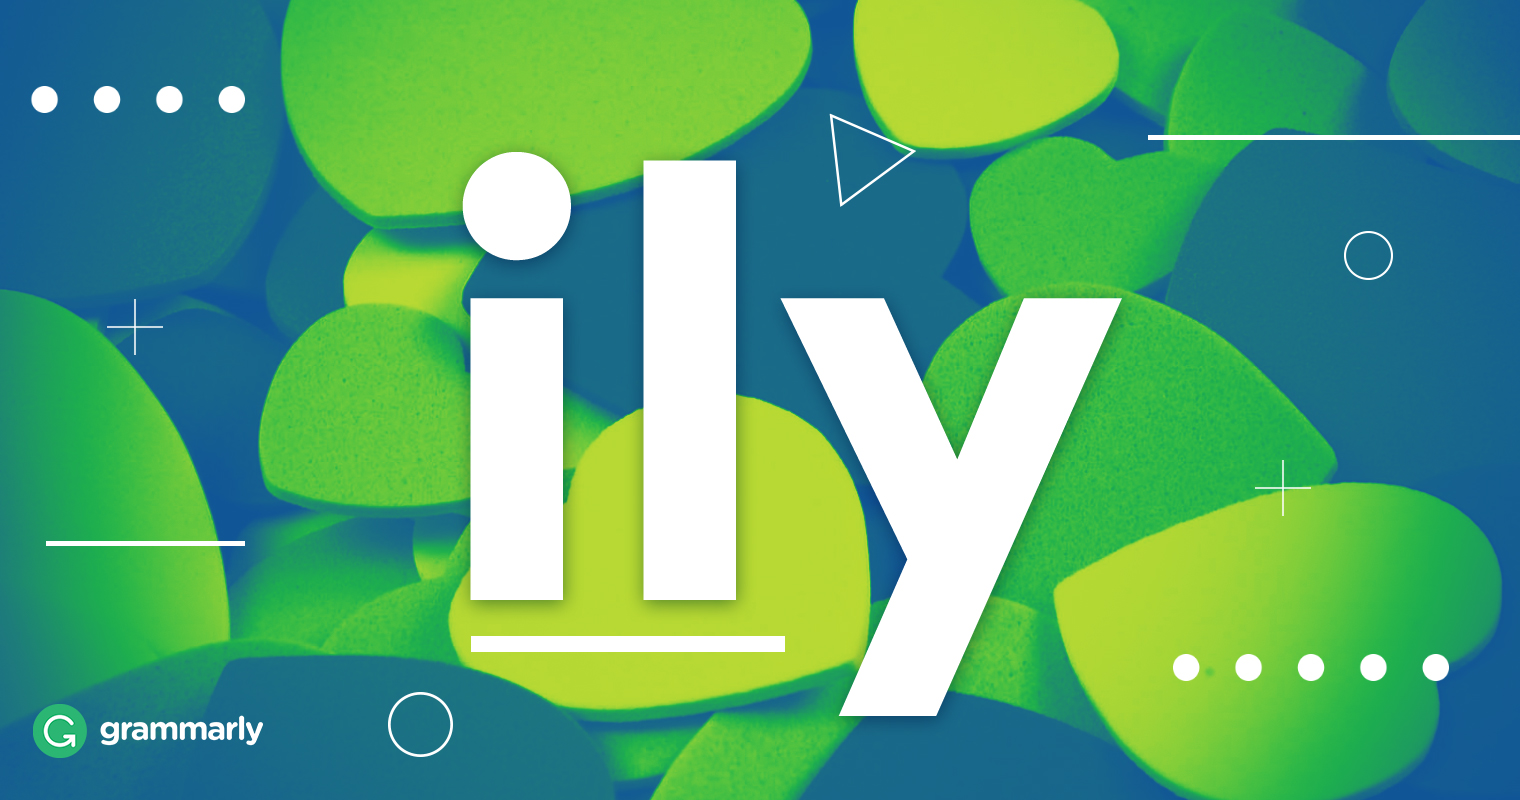 What Does Ily Mean? | Grammarly